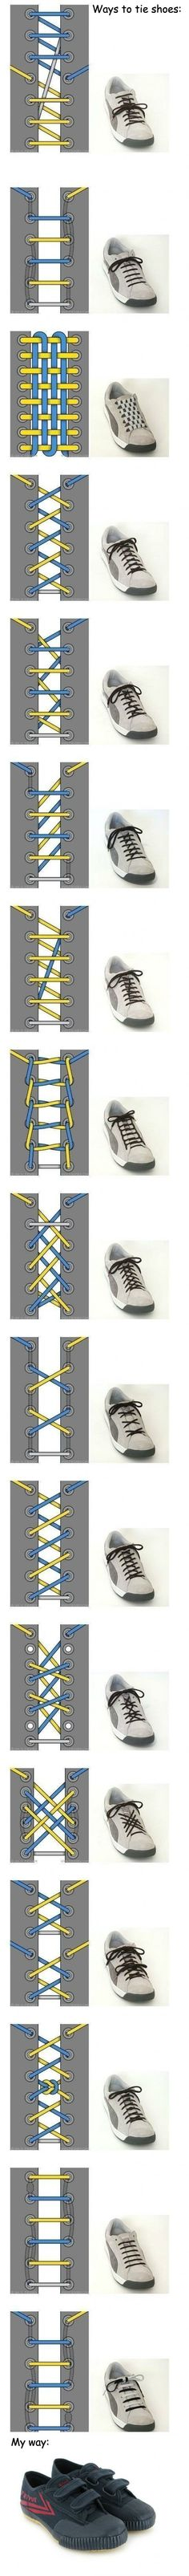 Ways to tie shoes!